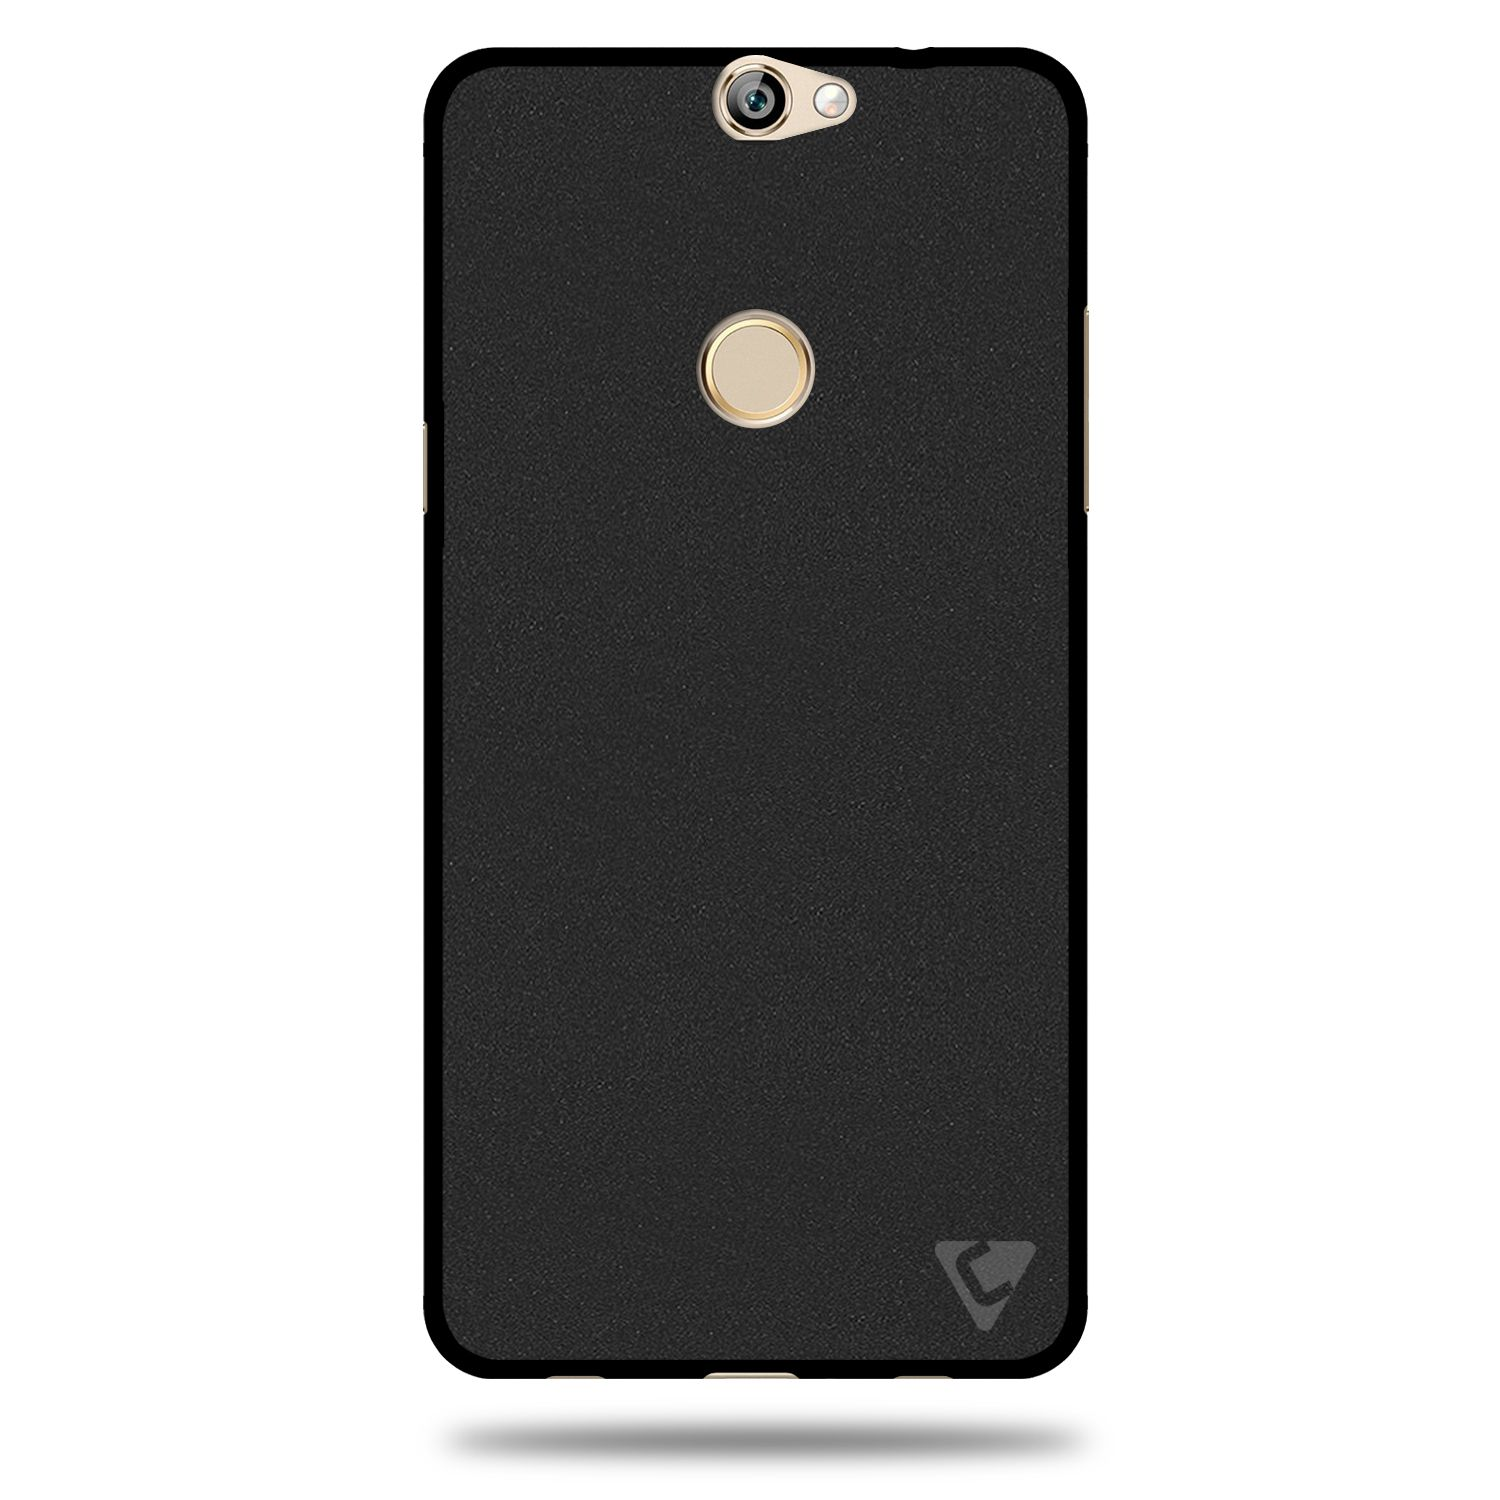 coolpad max cover by ceego black plain back covers online at low